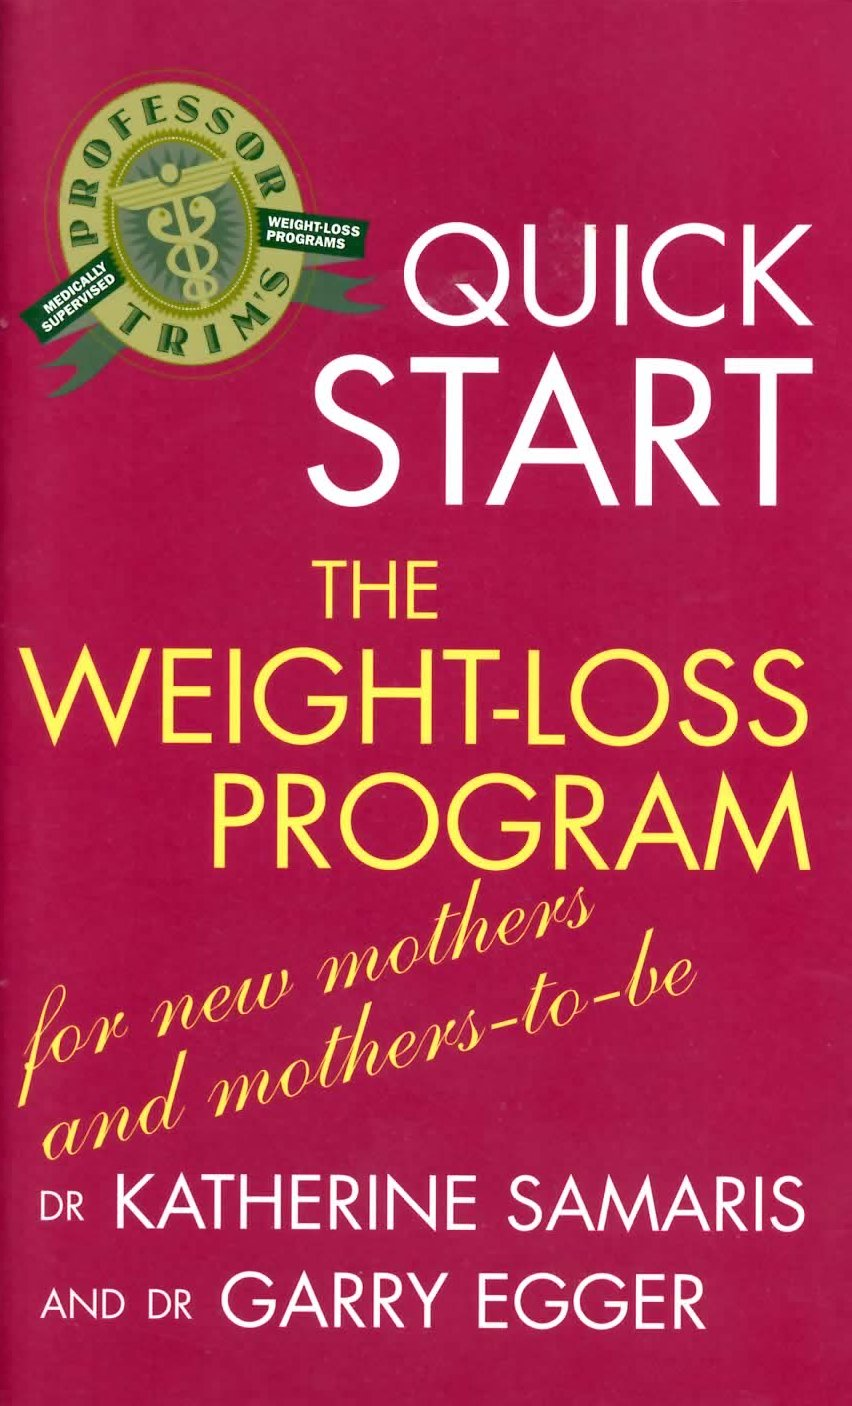 Quick Start – The Weight-Loss Program for New Mothers and Mothers-to ...